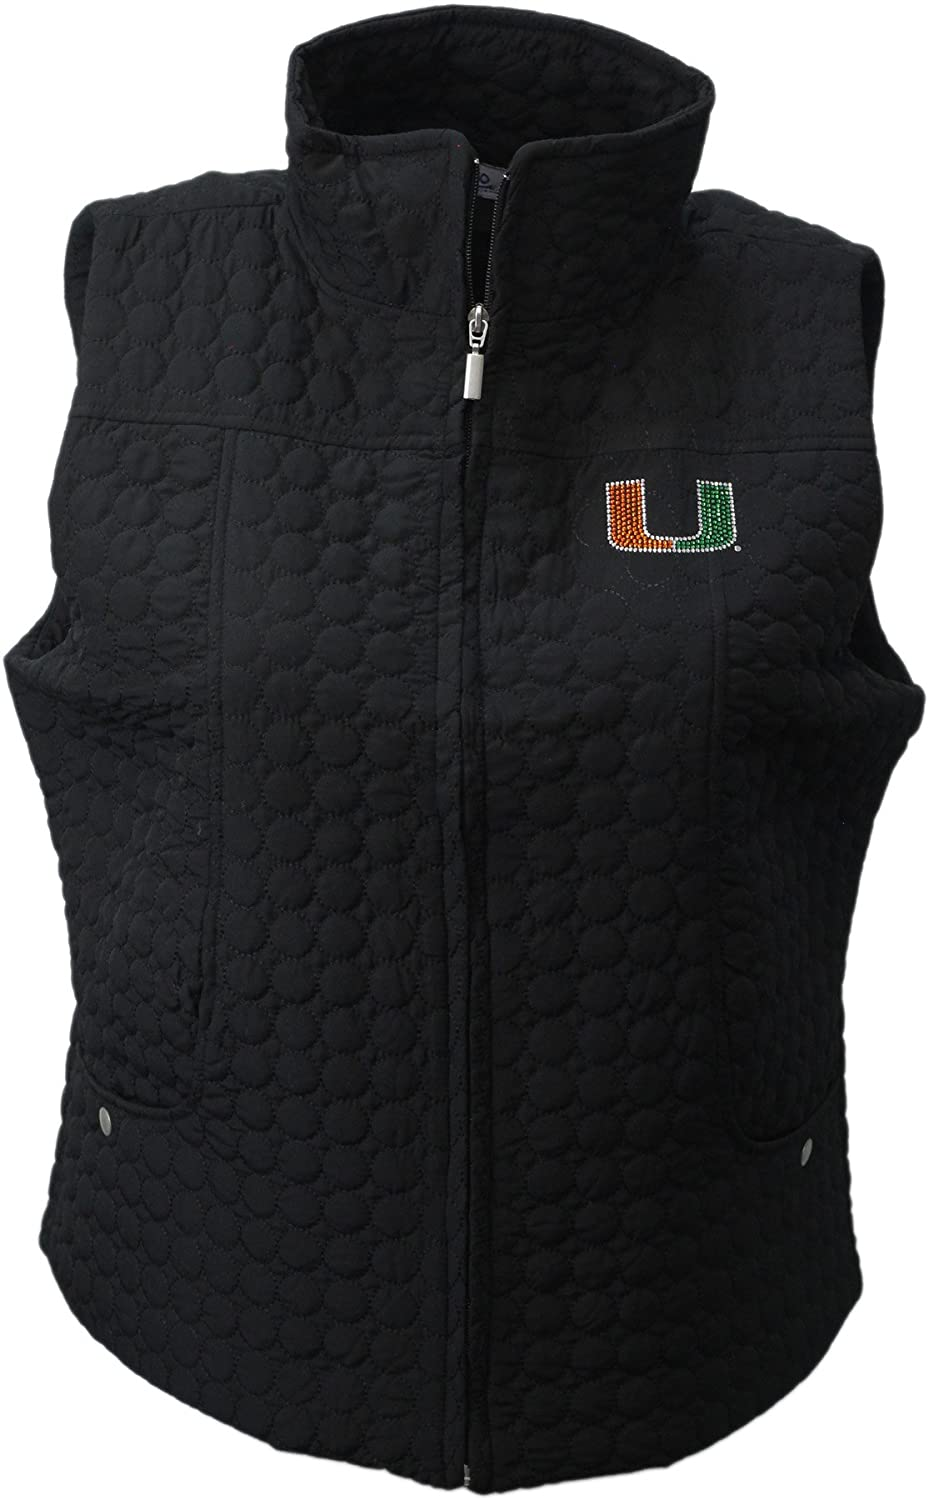 Nitro USA Womens Collegiate Missy Fit Quilted Vest